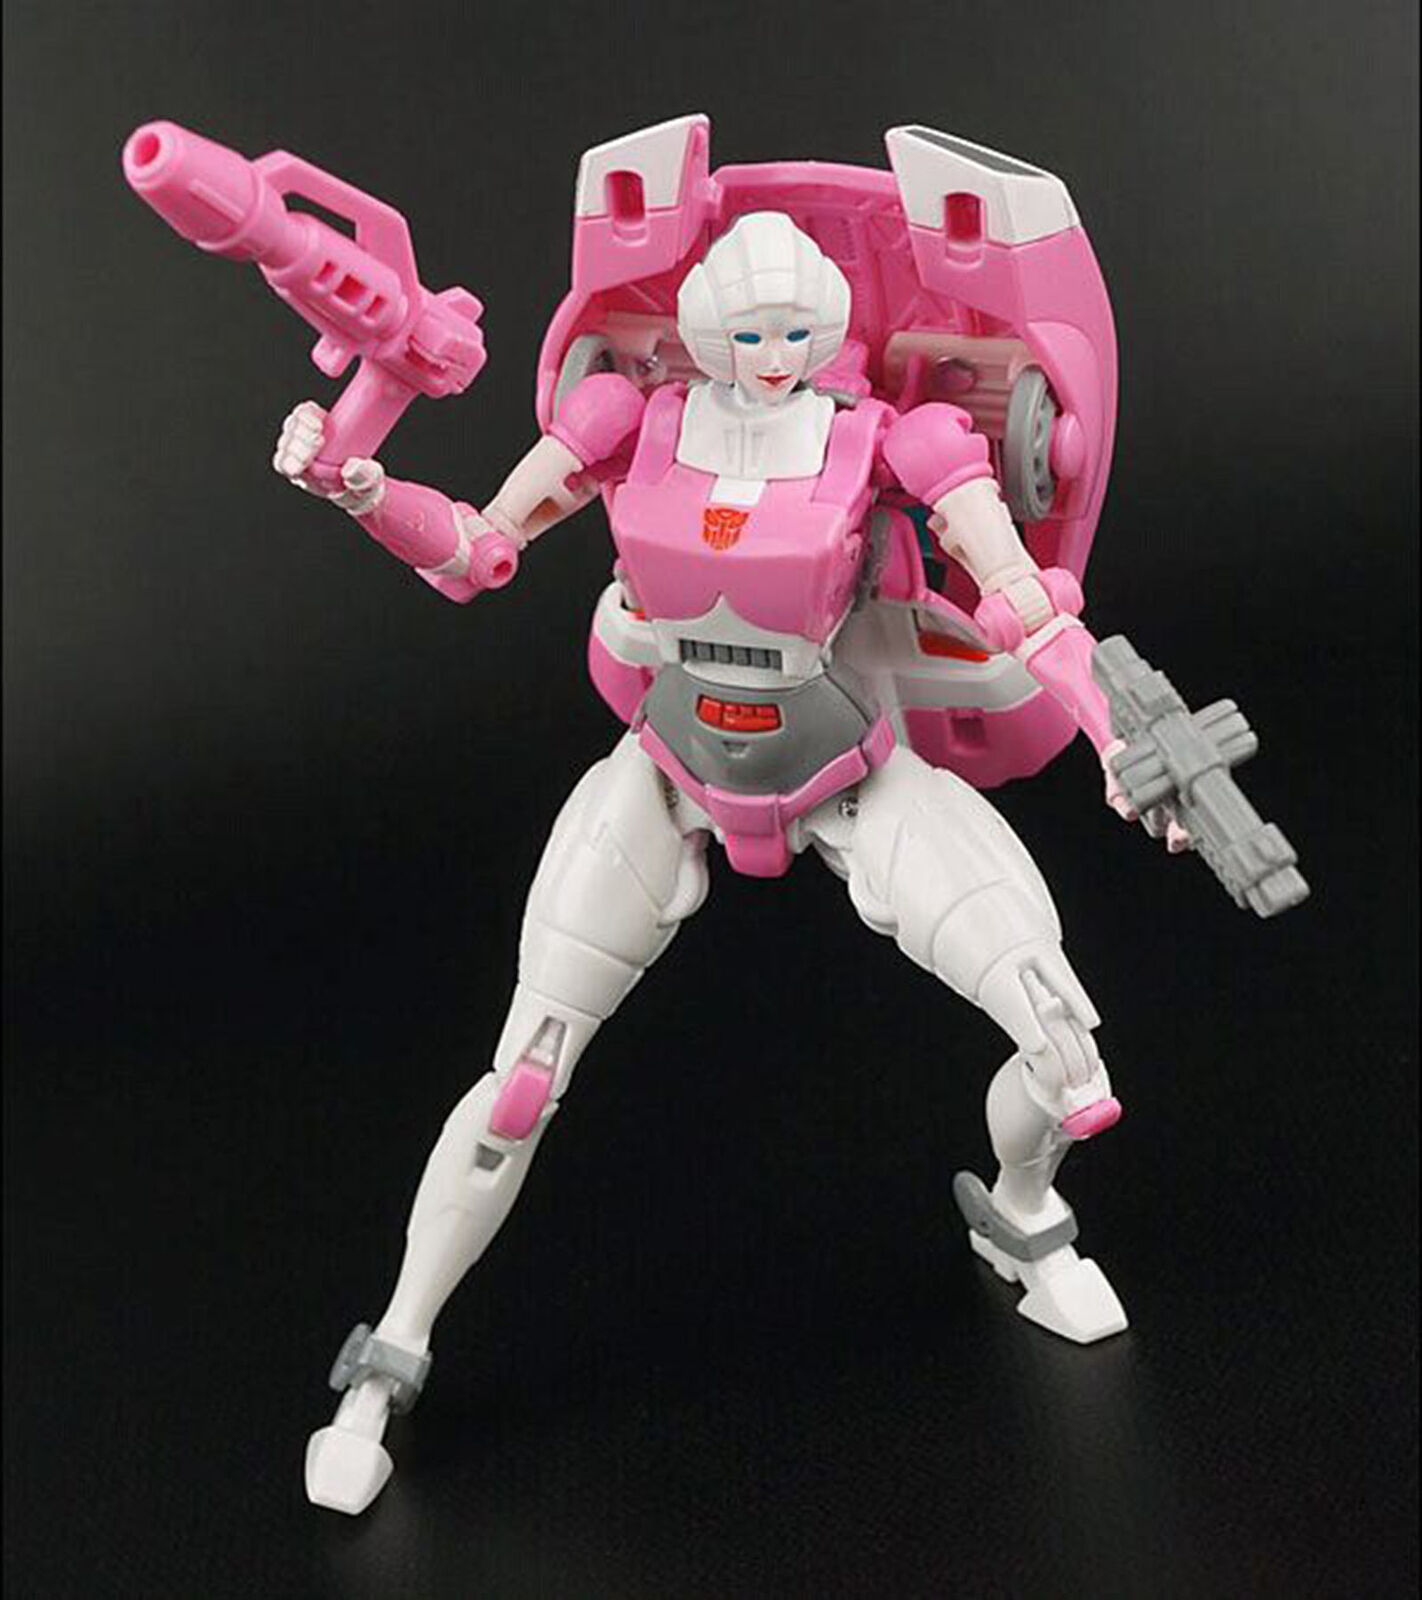 Transformers Legends LG10 ARCEE ARCEE ARCEE IDW Action Figure Gift Christmas Toy Autobots 5b4db8